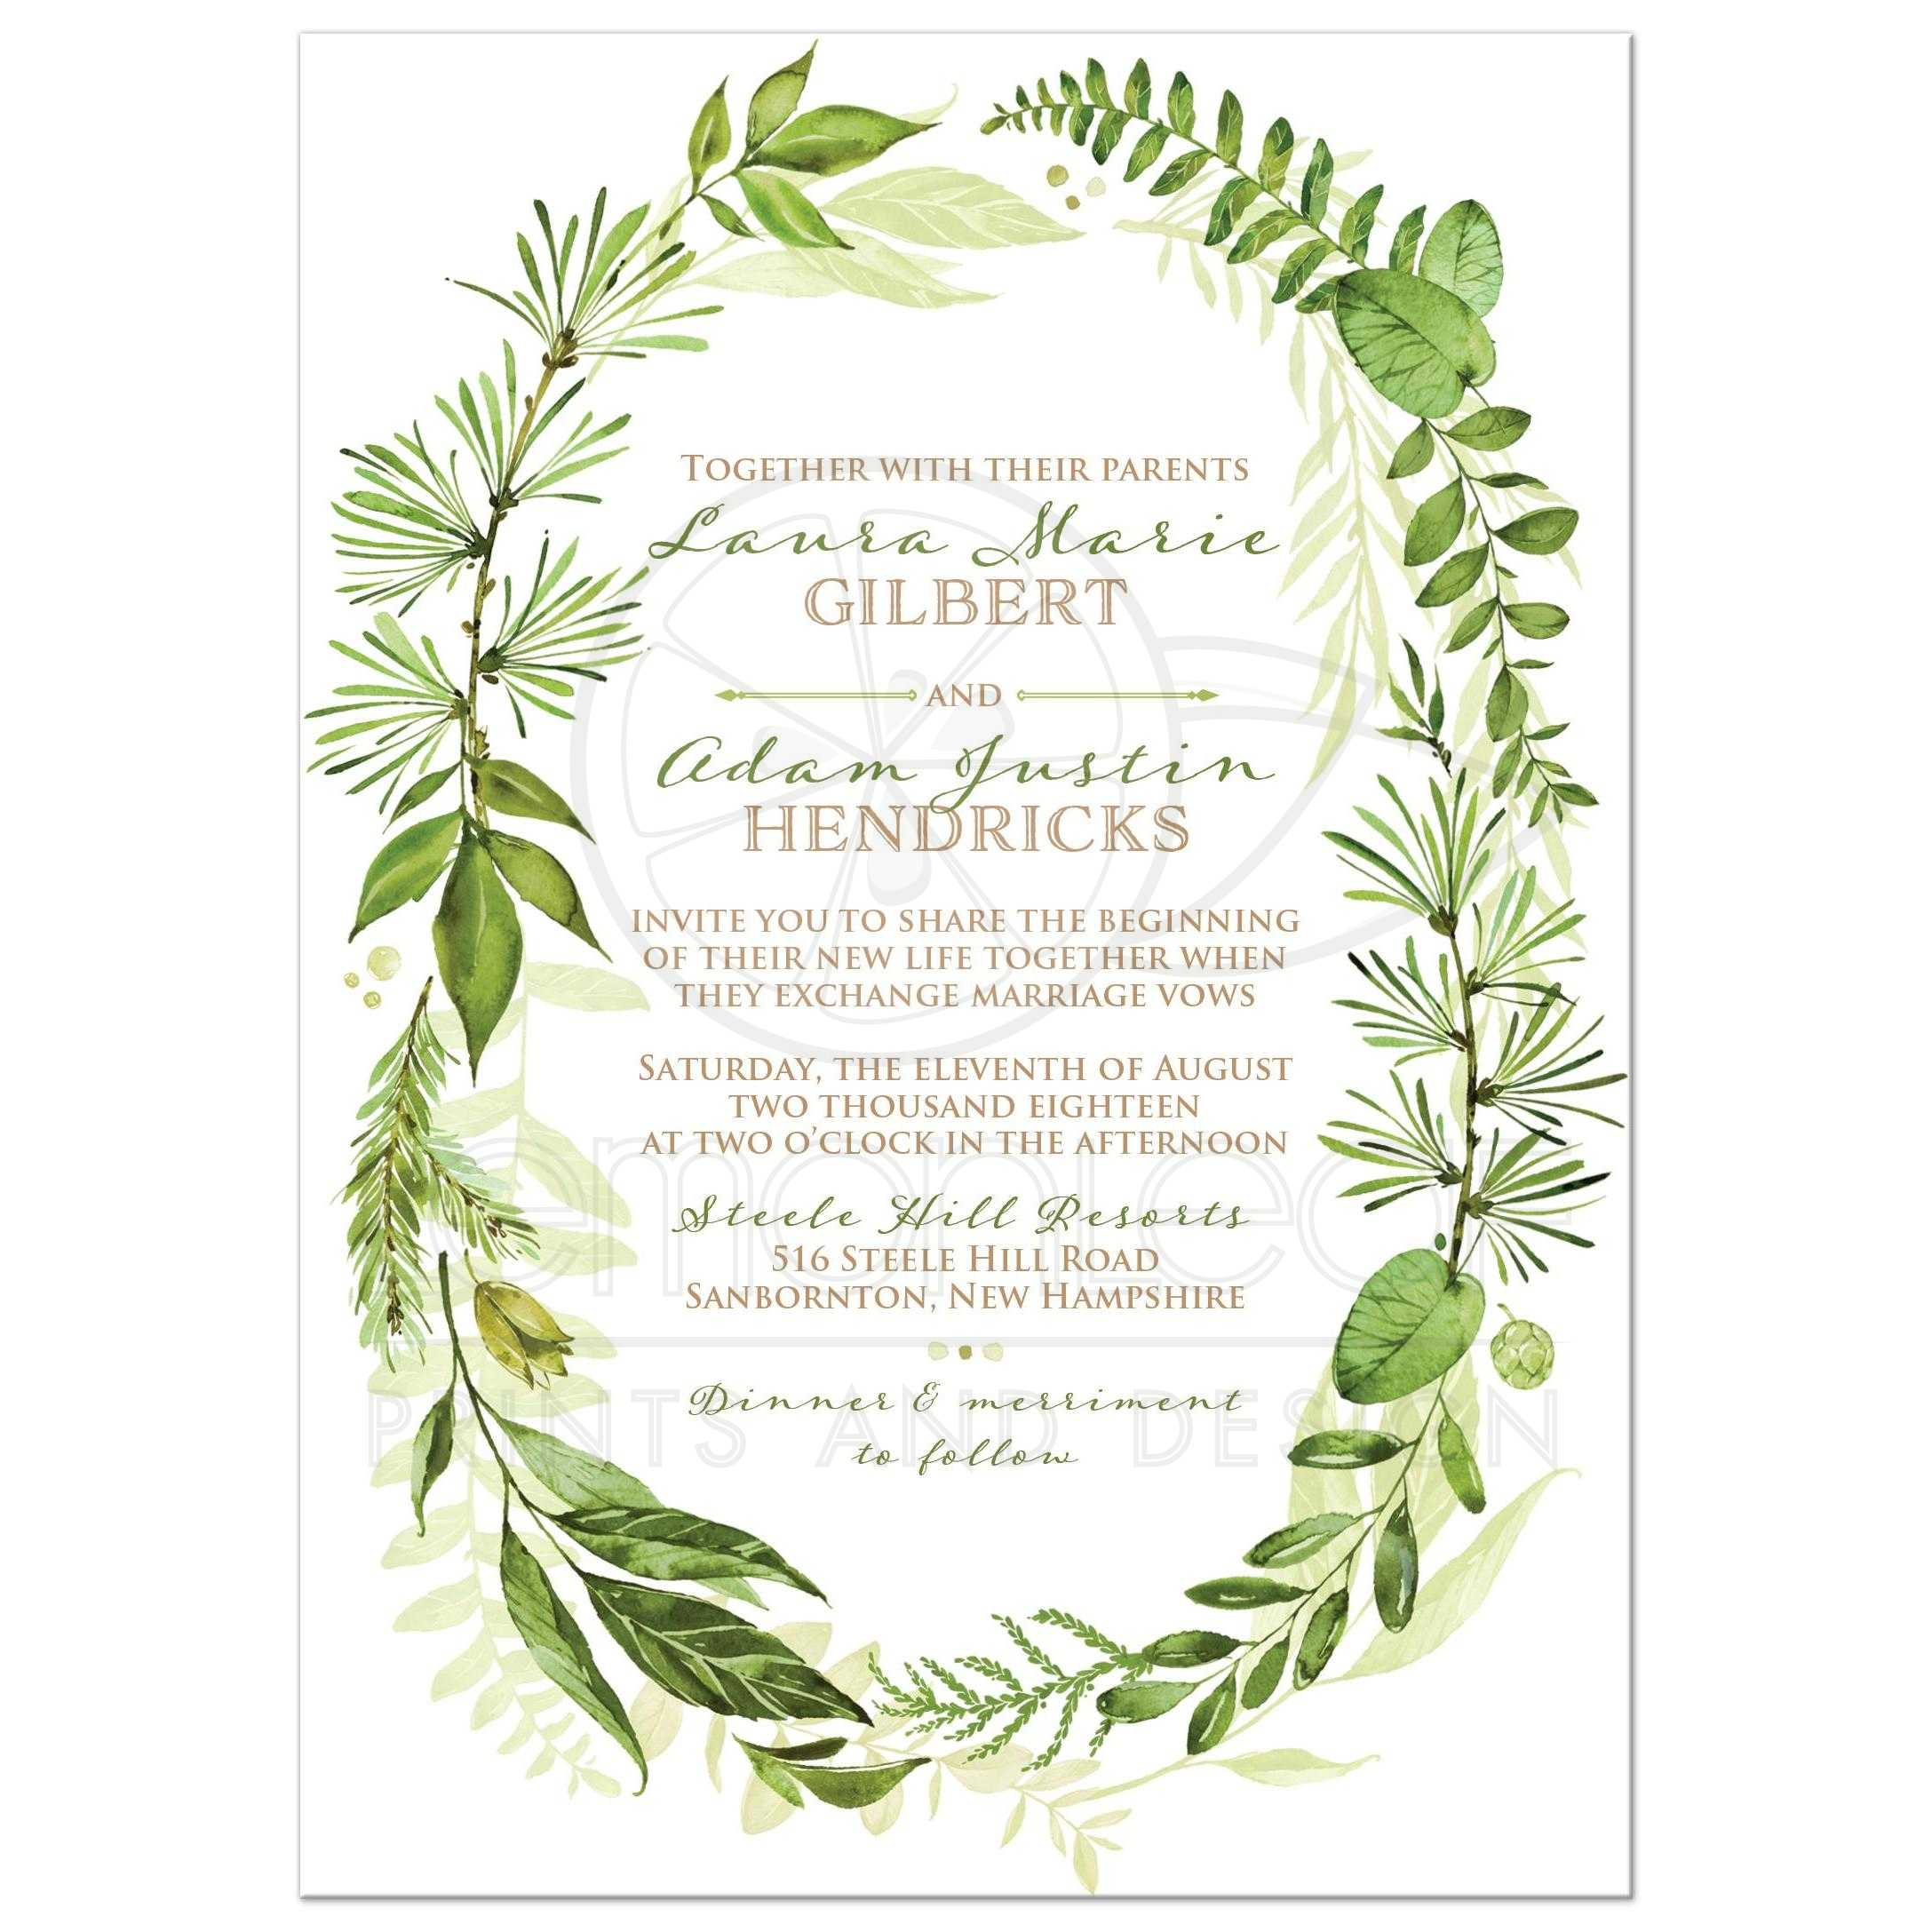 Greenery Foliage Wedding Invitation Watercolor Leaves